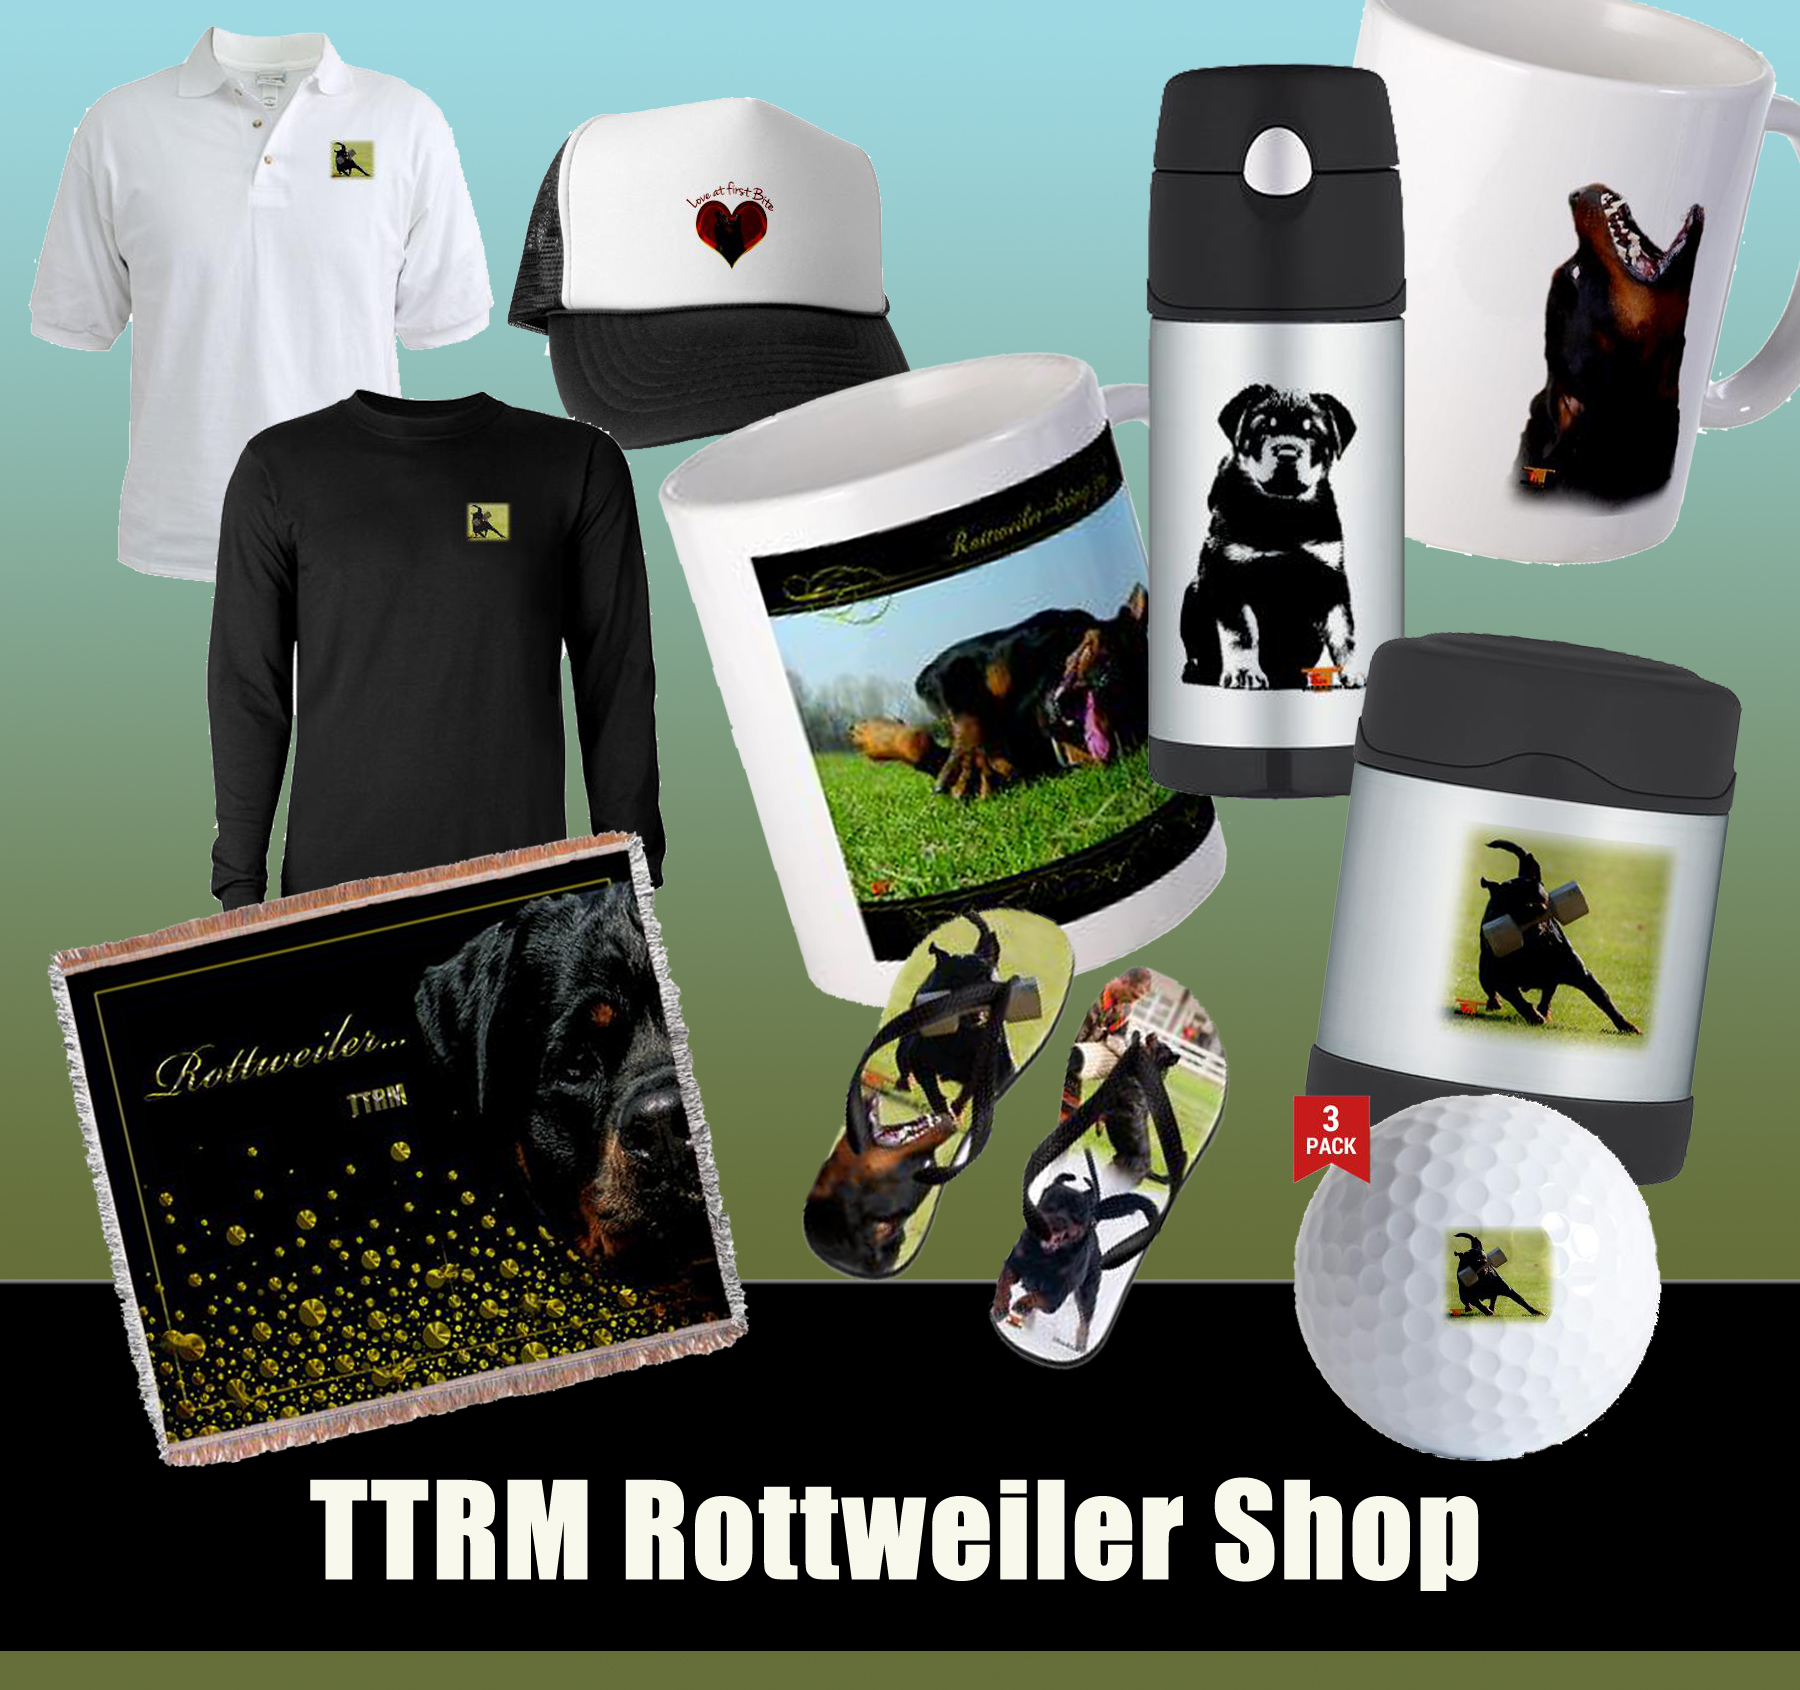 Purchase TTRM Merchandise